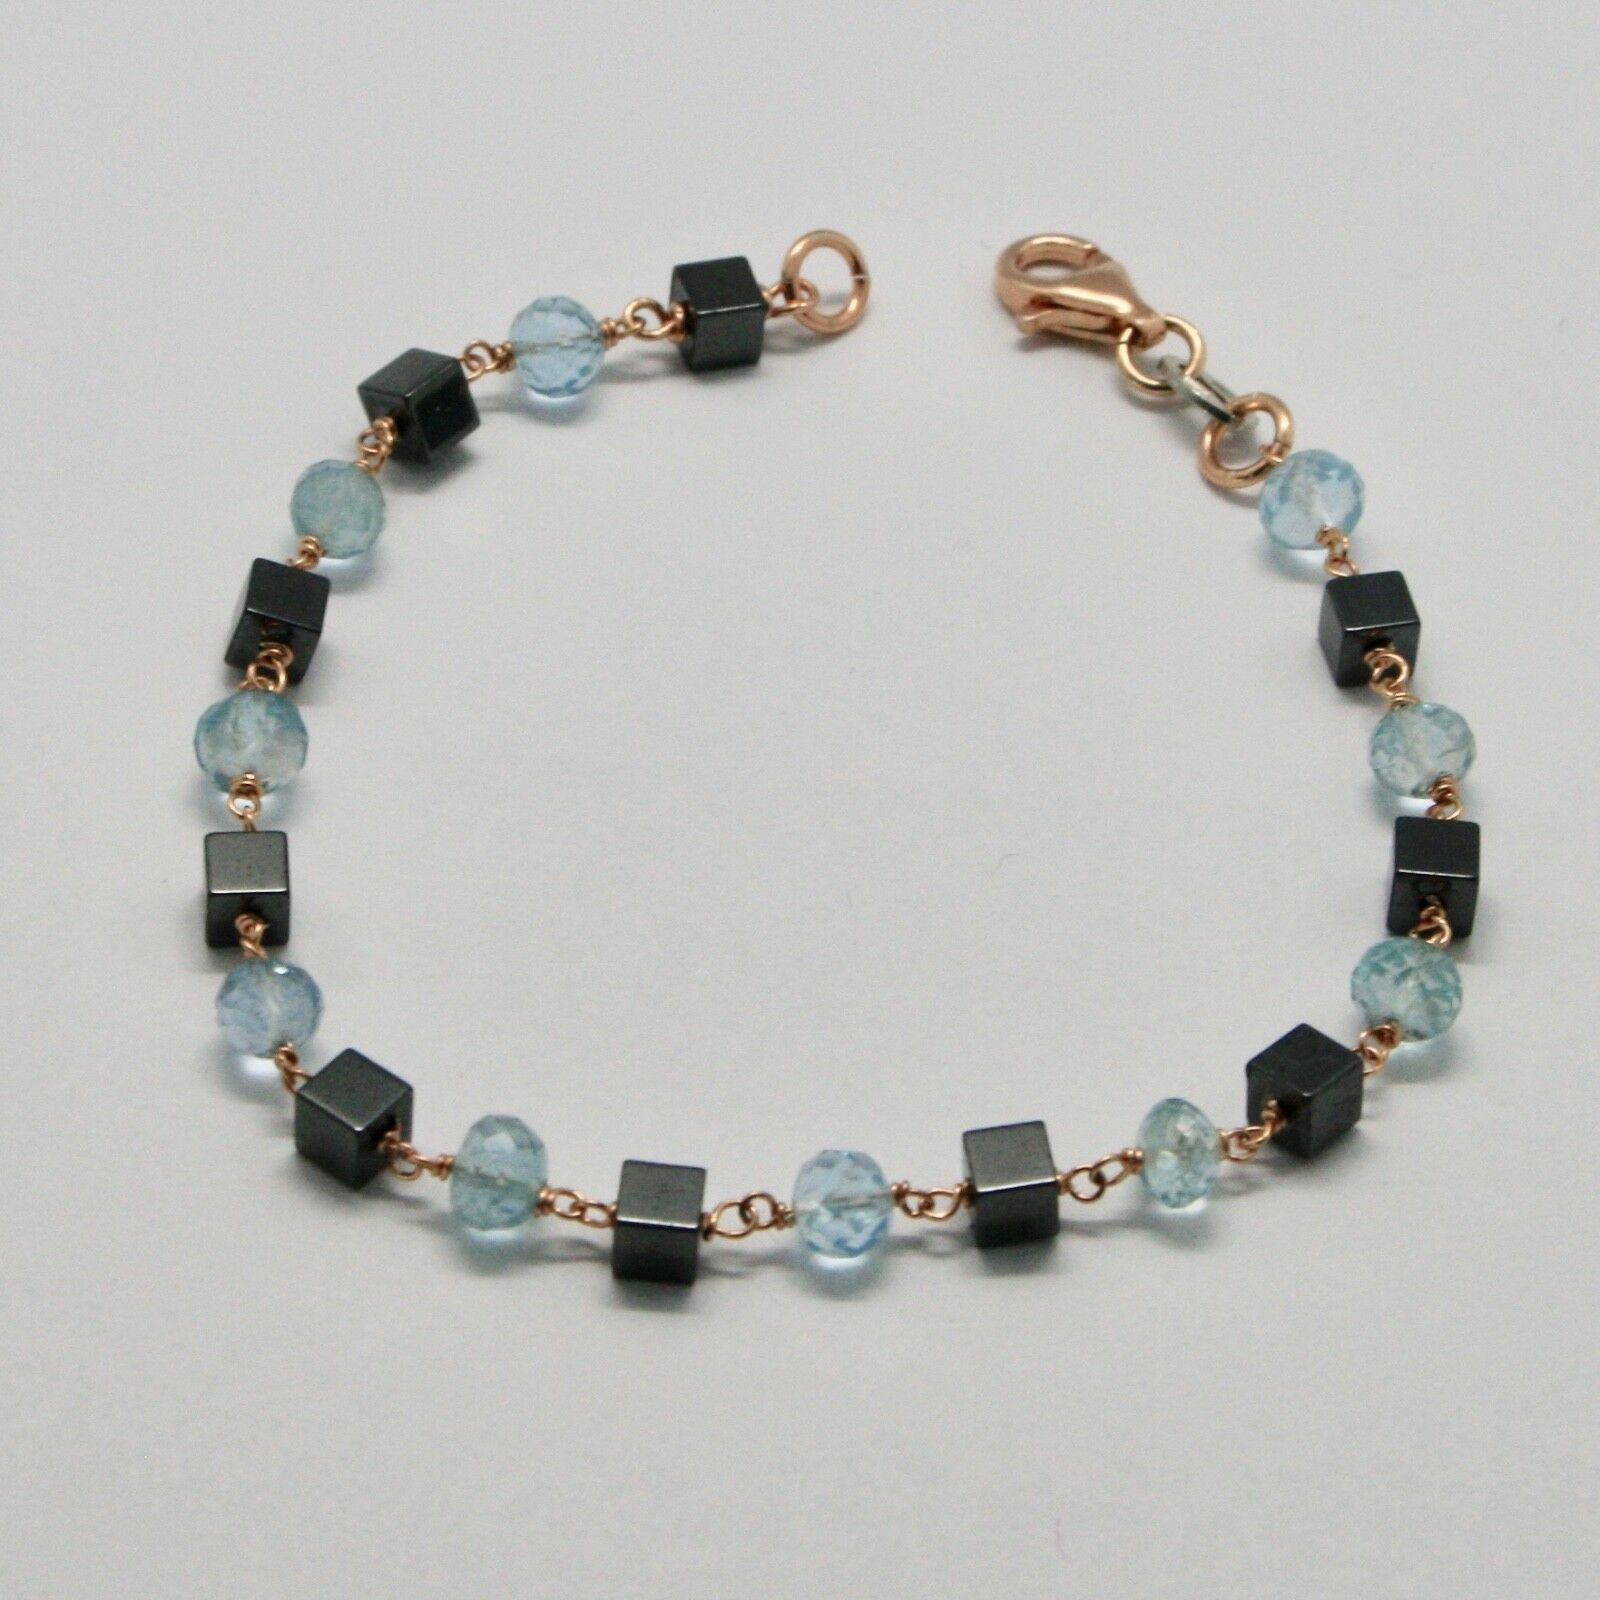 Silver Bracelet 925 with Aquamarine Faceted and Hematite Made in Italy image 3